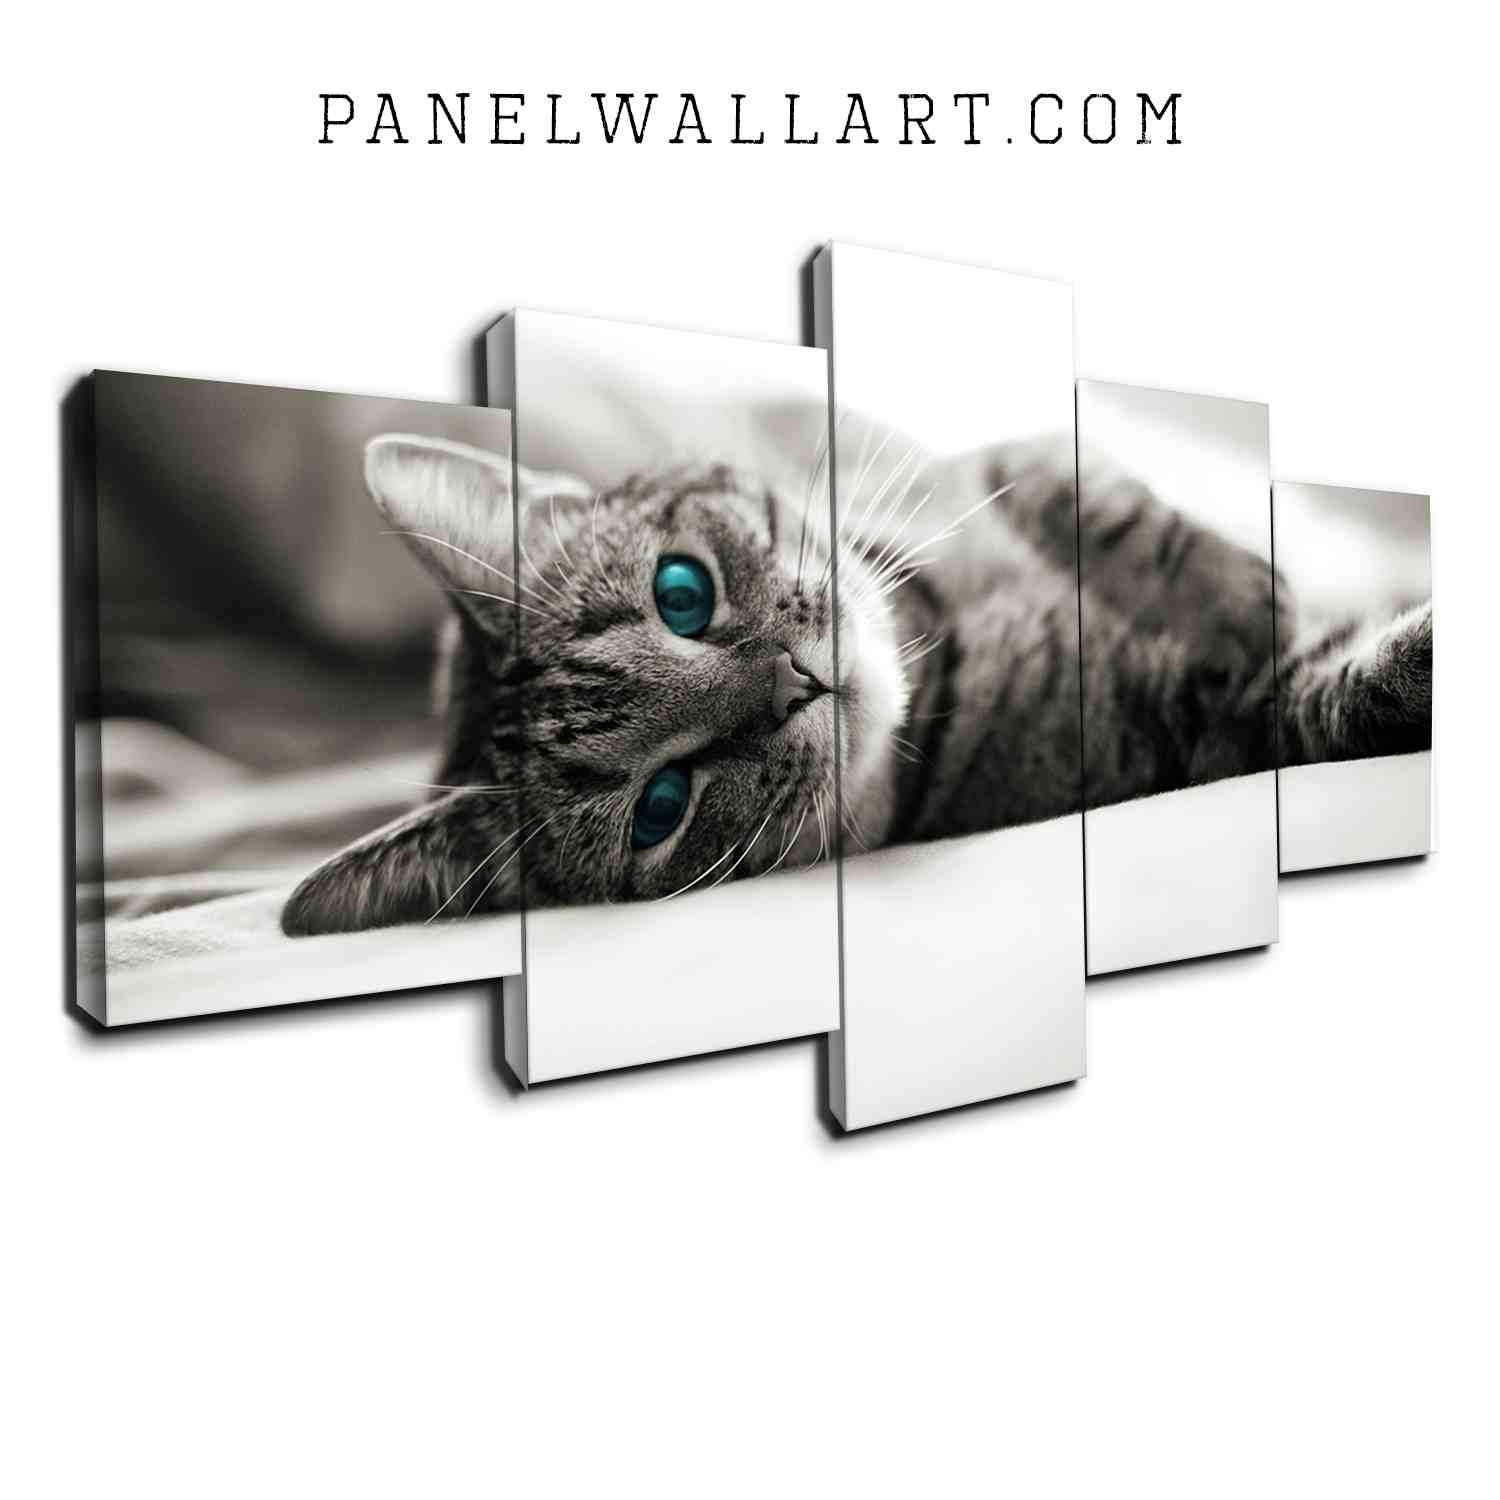 5 Panel Canvas Wall Art | Kitten On Bed | Panelwallart with Best and Newest Cat Canvas Wall Art